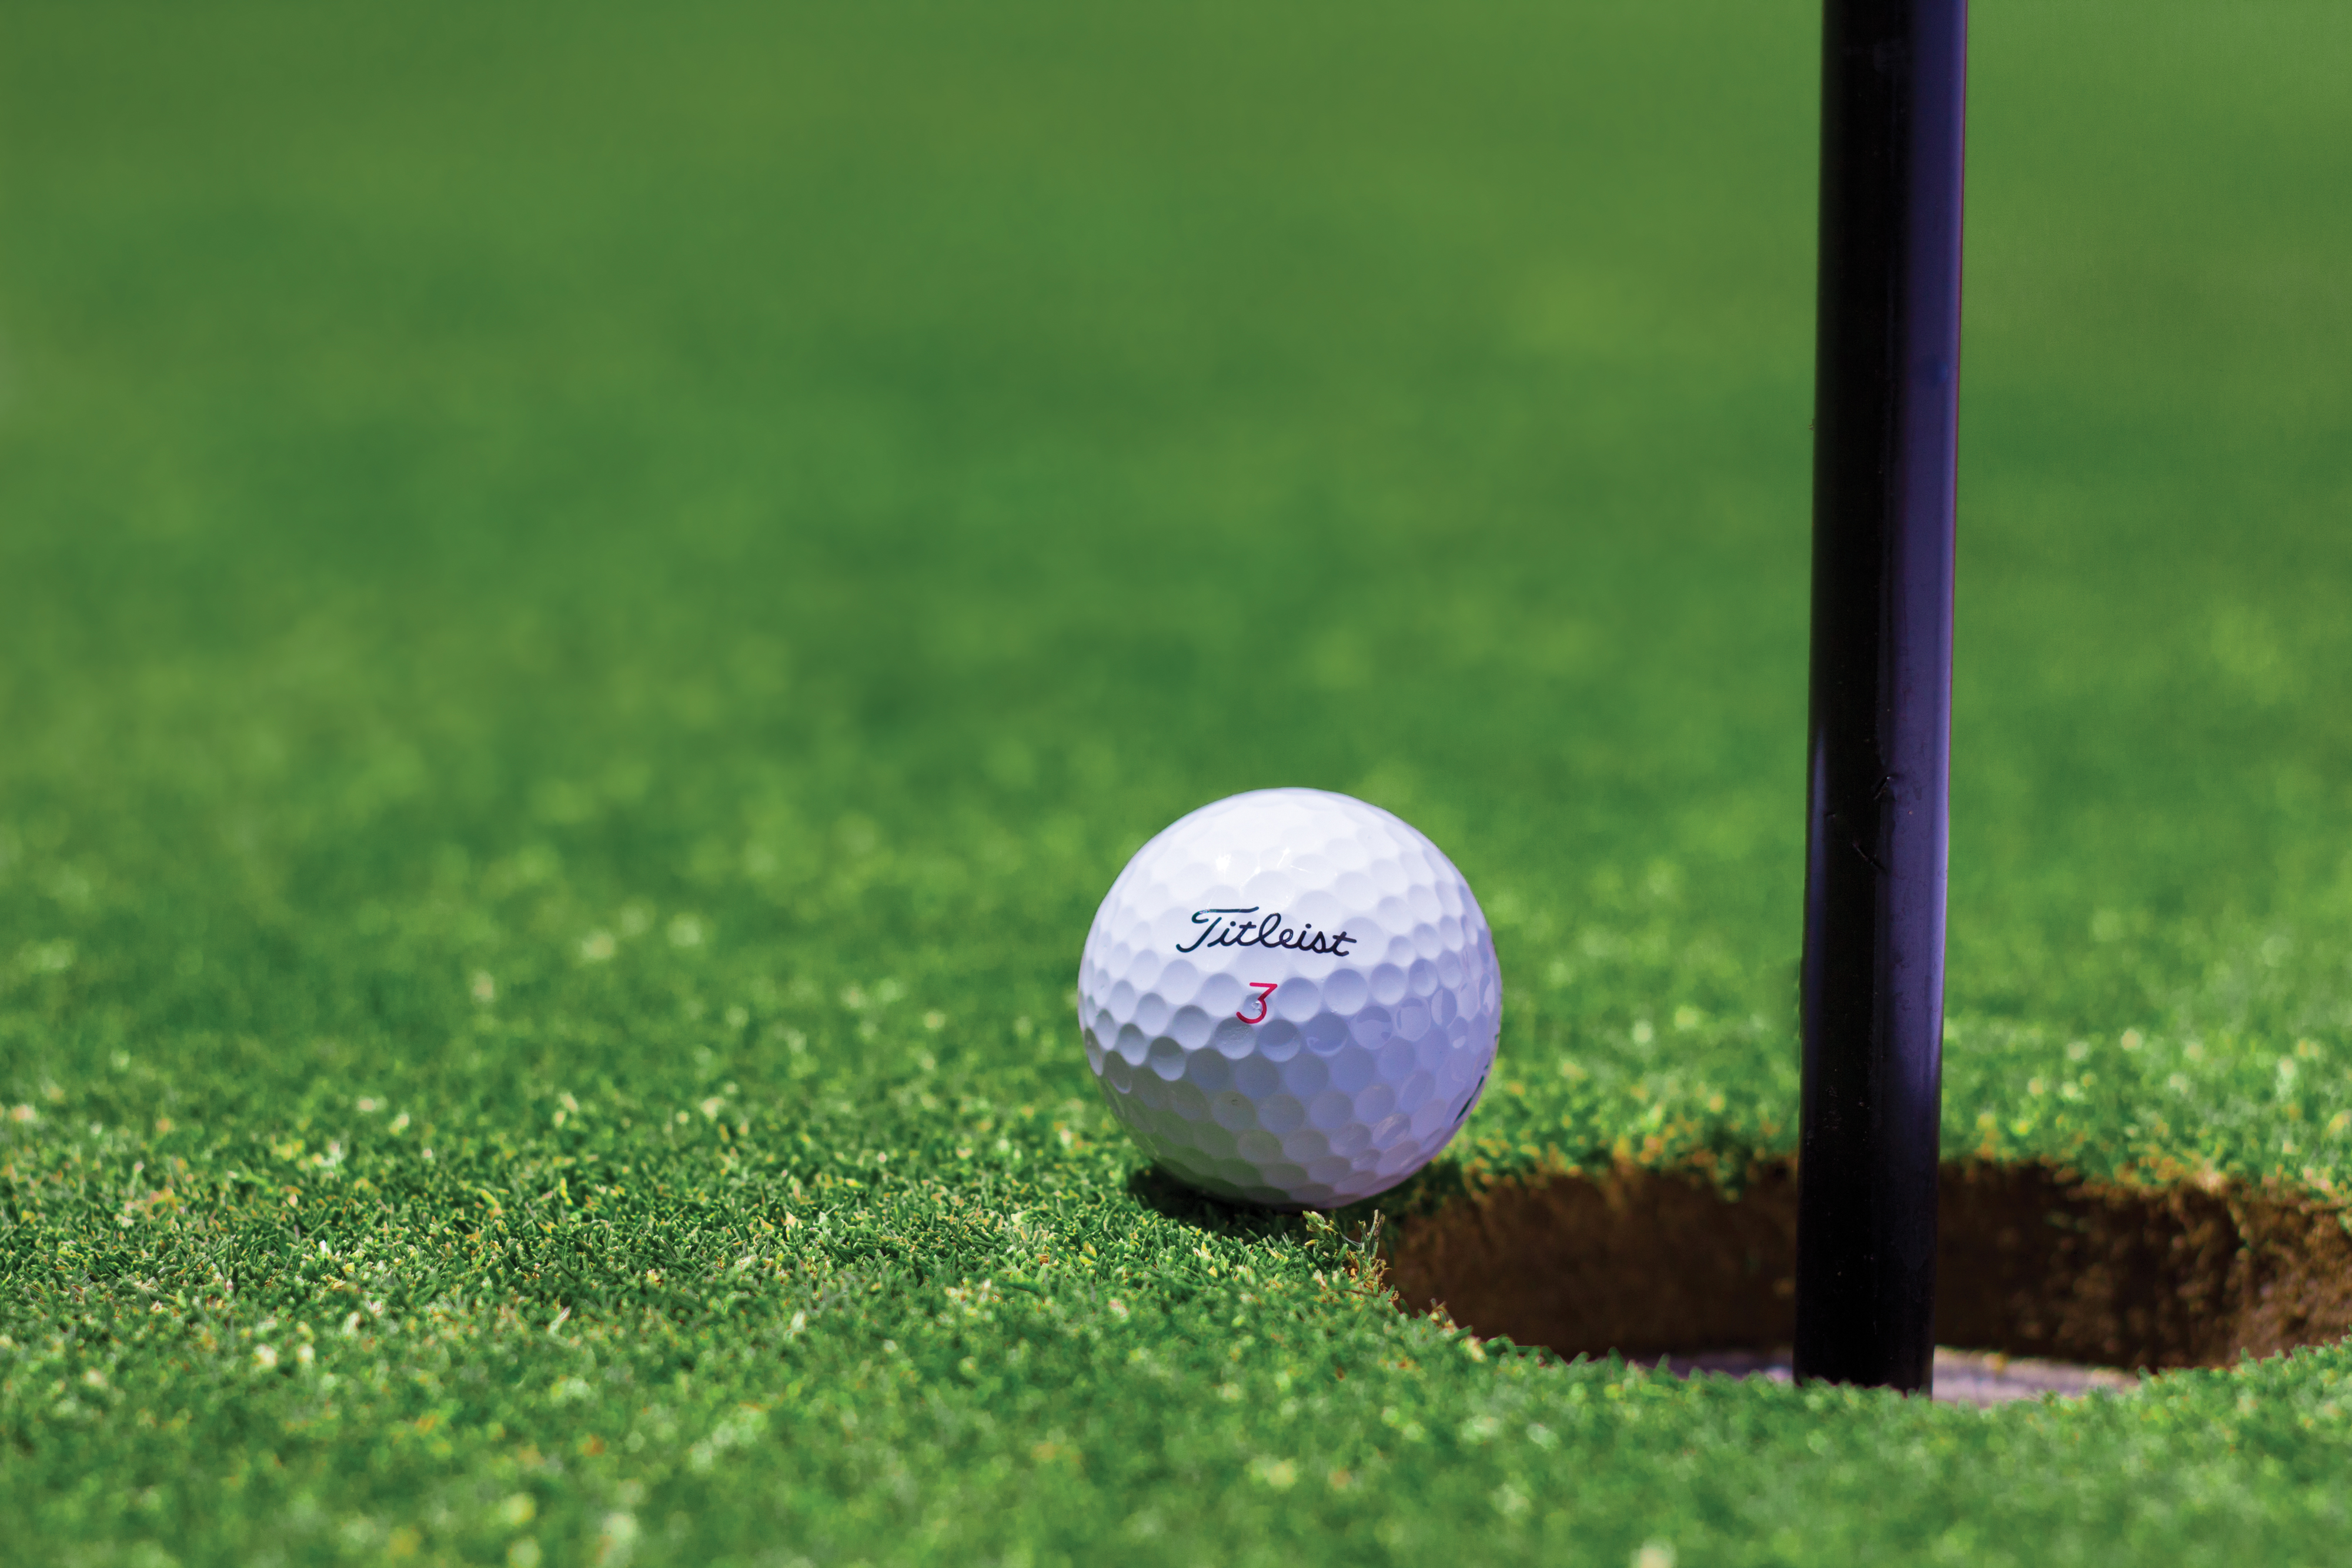 The Chamber will have 280 golfers participate in this year's event.